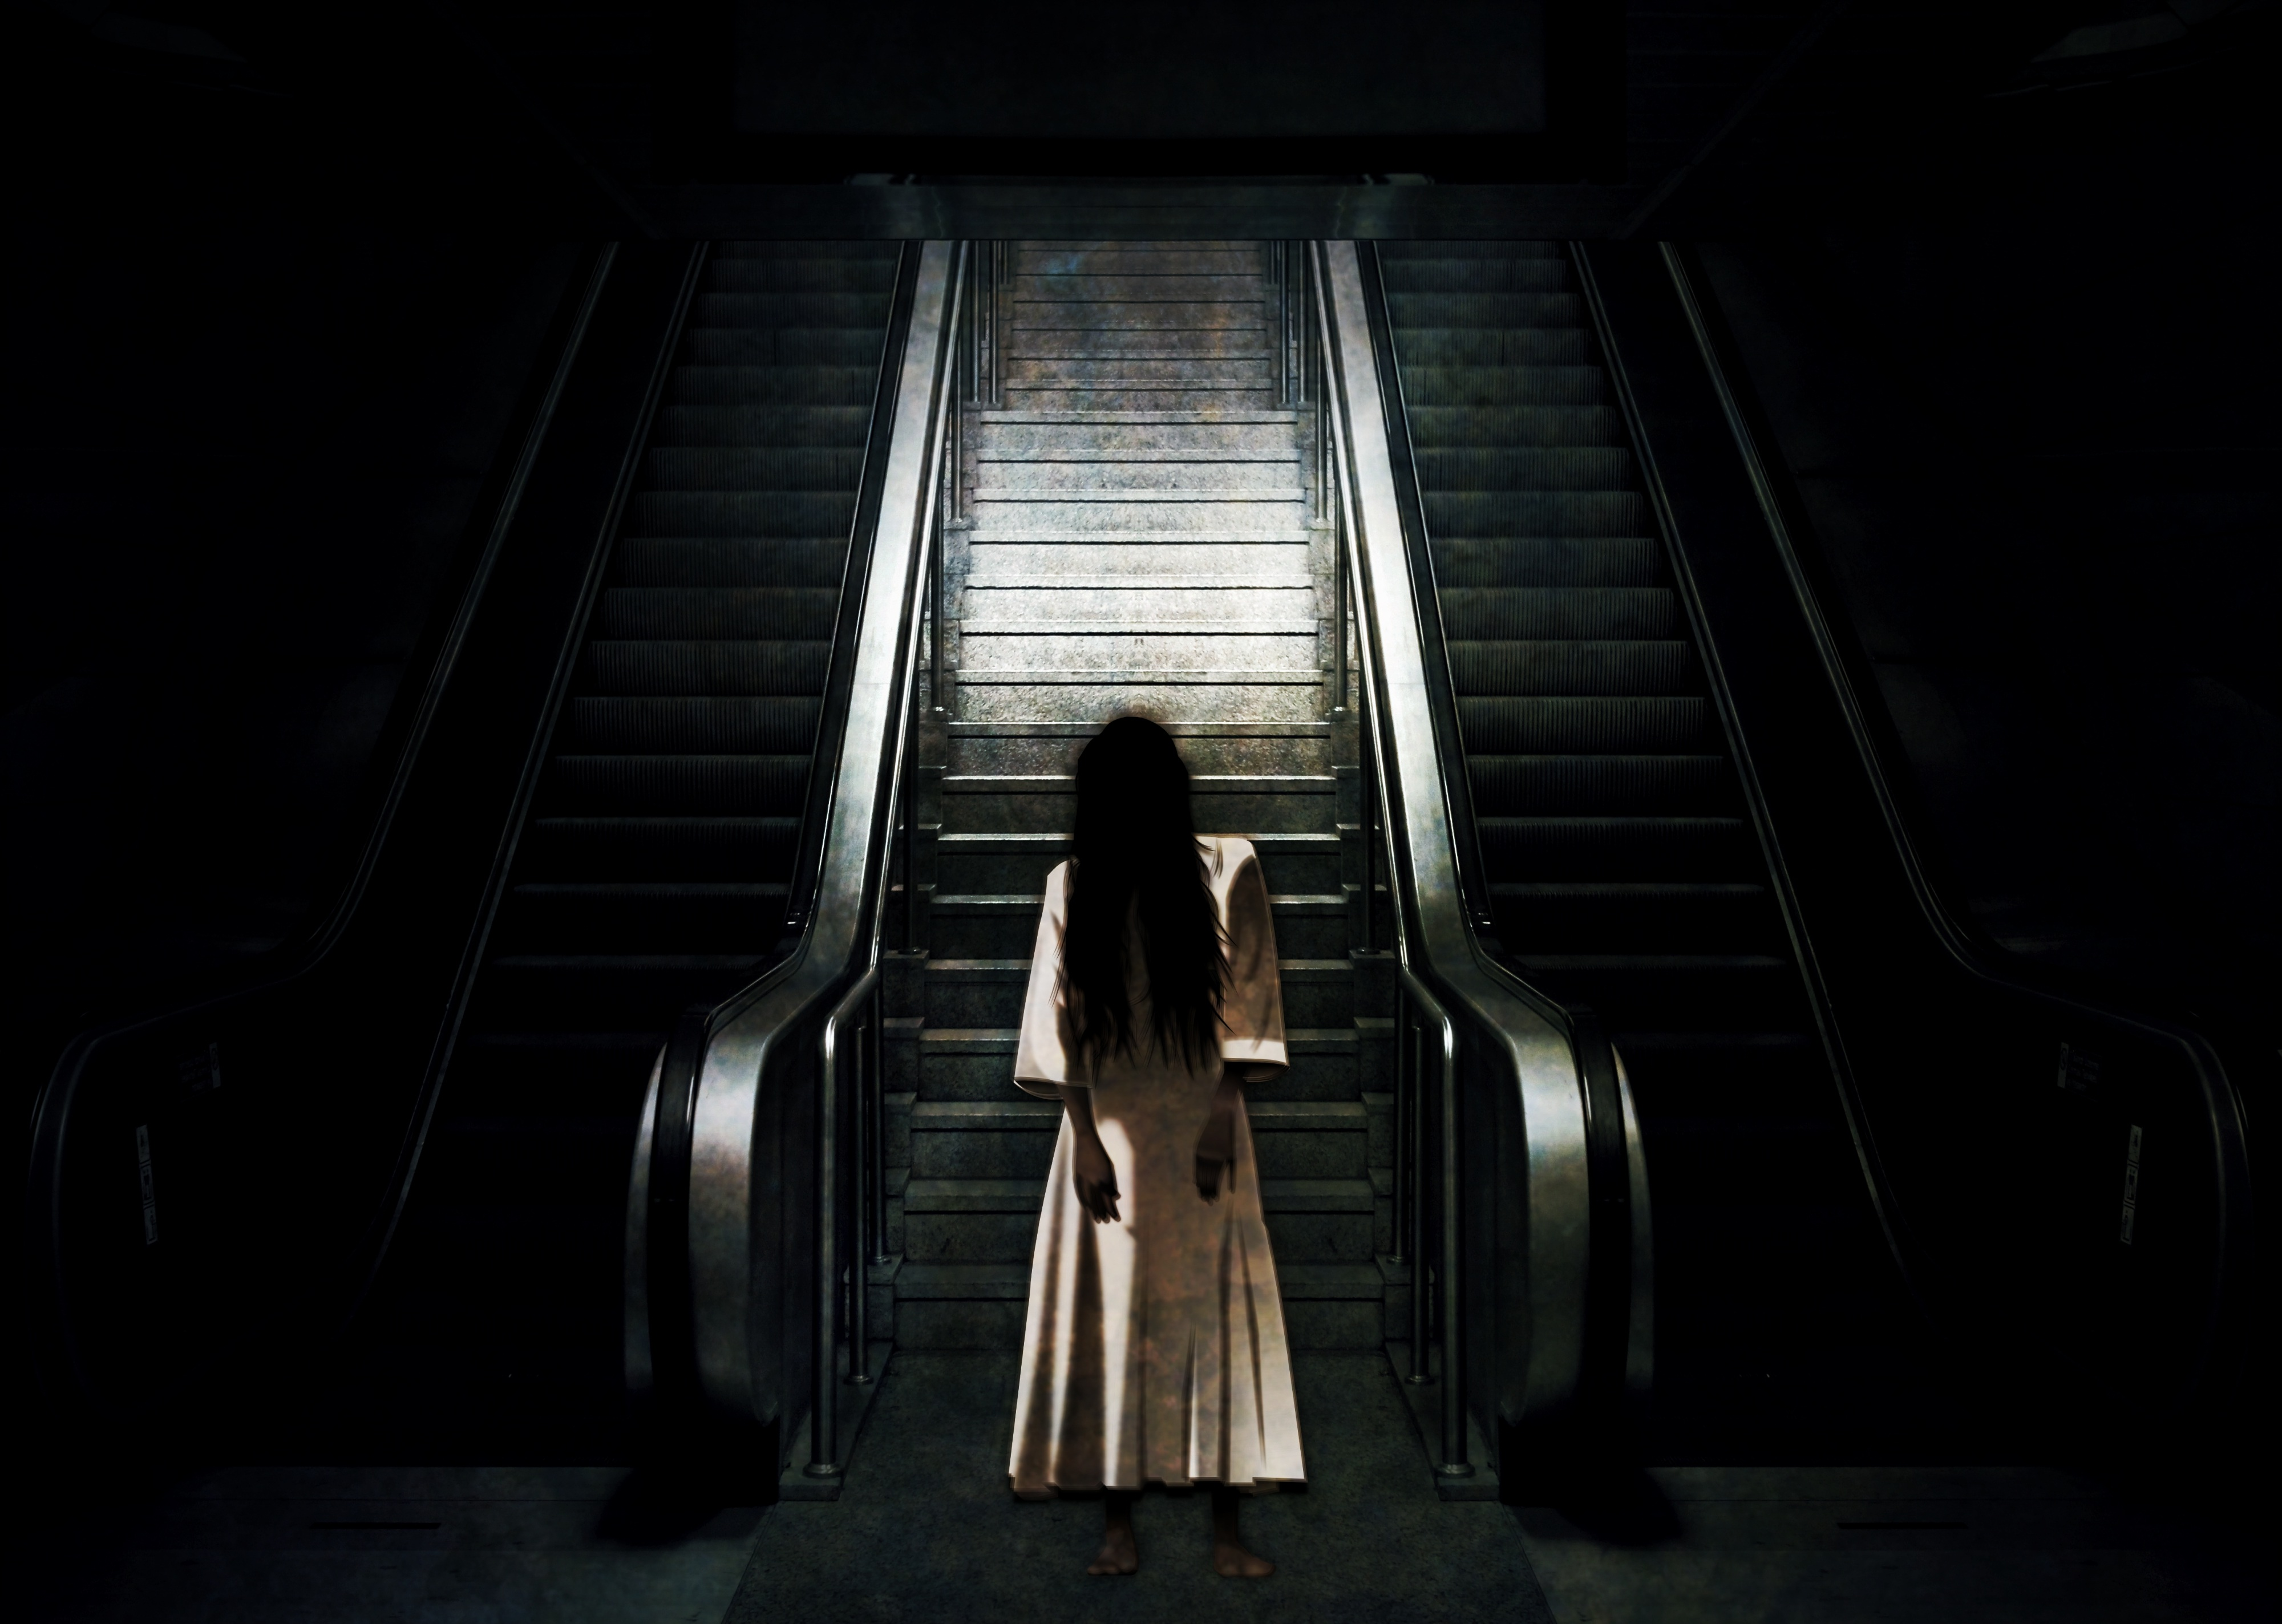 Ghost by the escalator photo